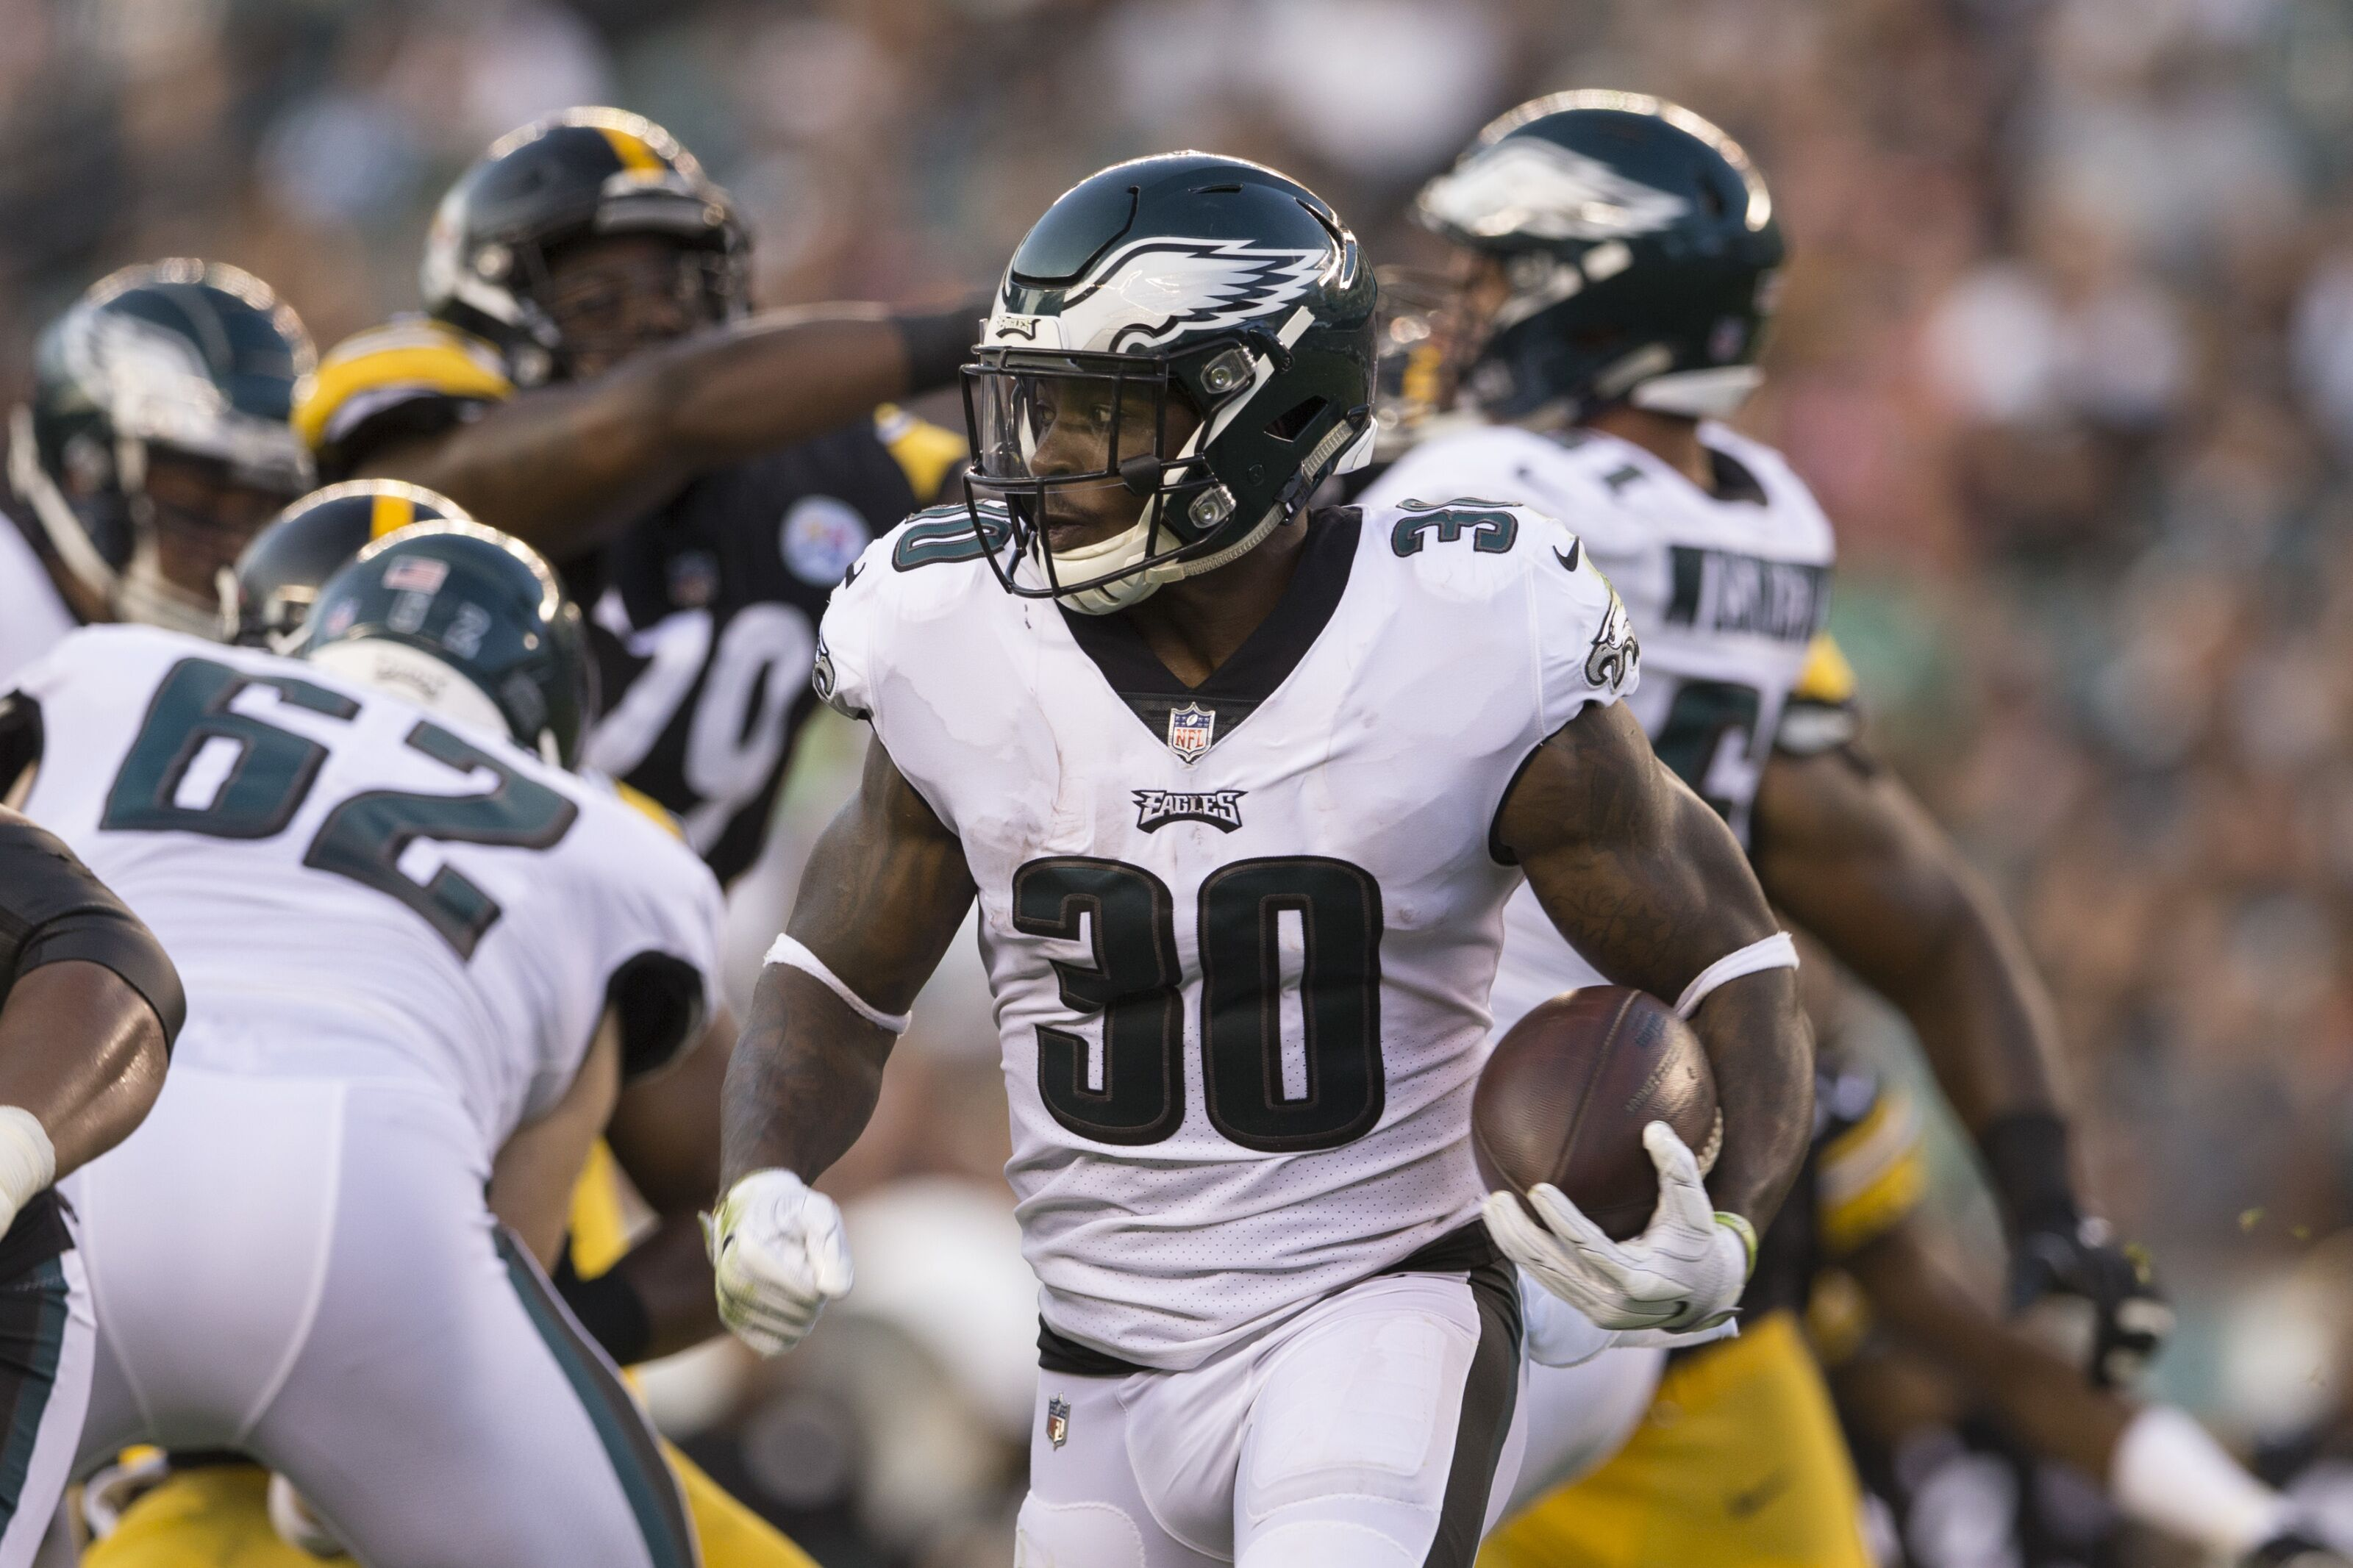 Corey Clement blames his struggles on a lack of carries